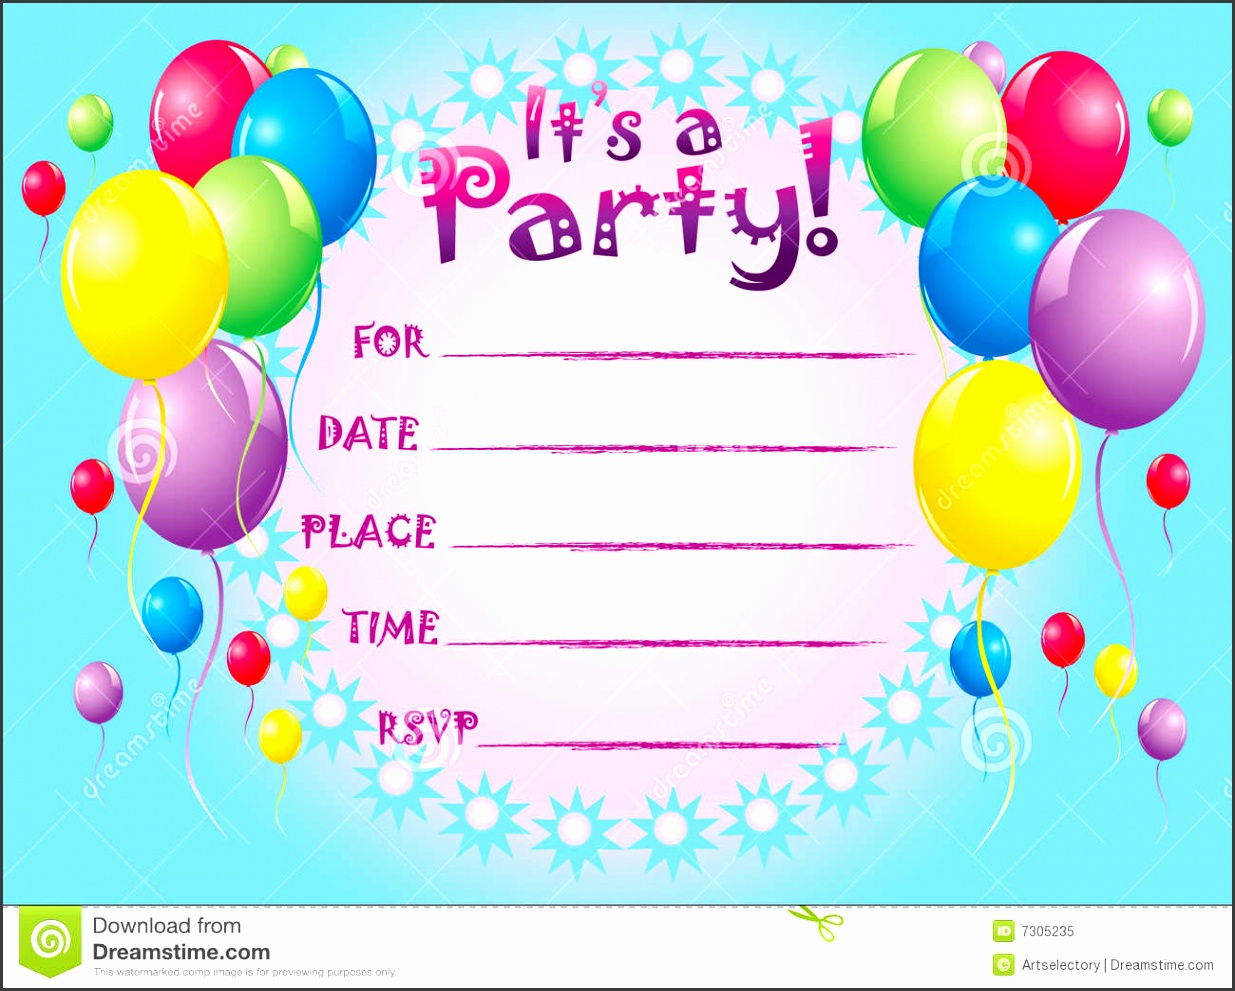 blue color birthday card invitation templates colorful ballon pink color layout modern ideas blue background